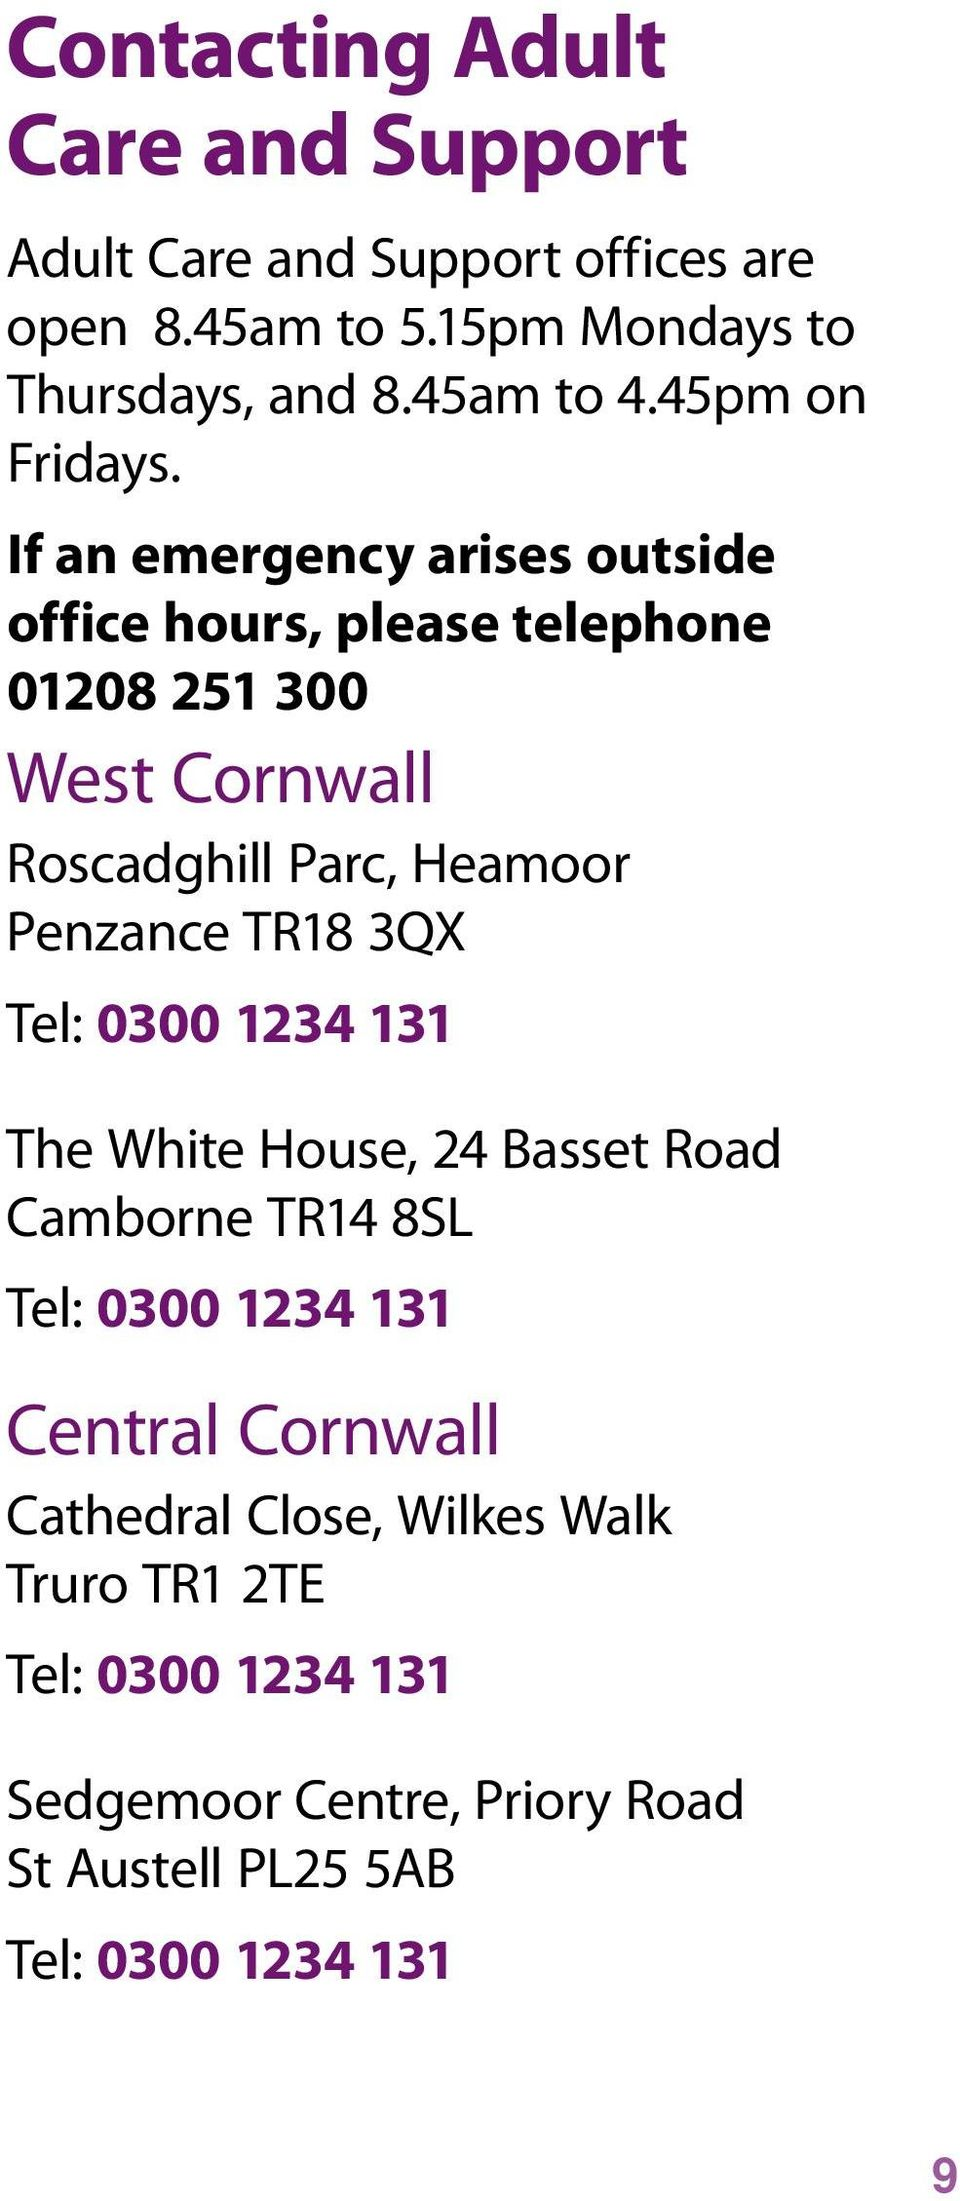 If an emergency arises outside office hours, please telephone 01208 251 300 West Cornwall Roscadghill Parc,